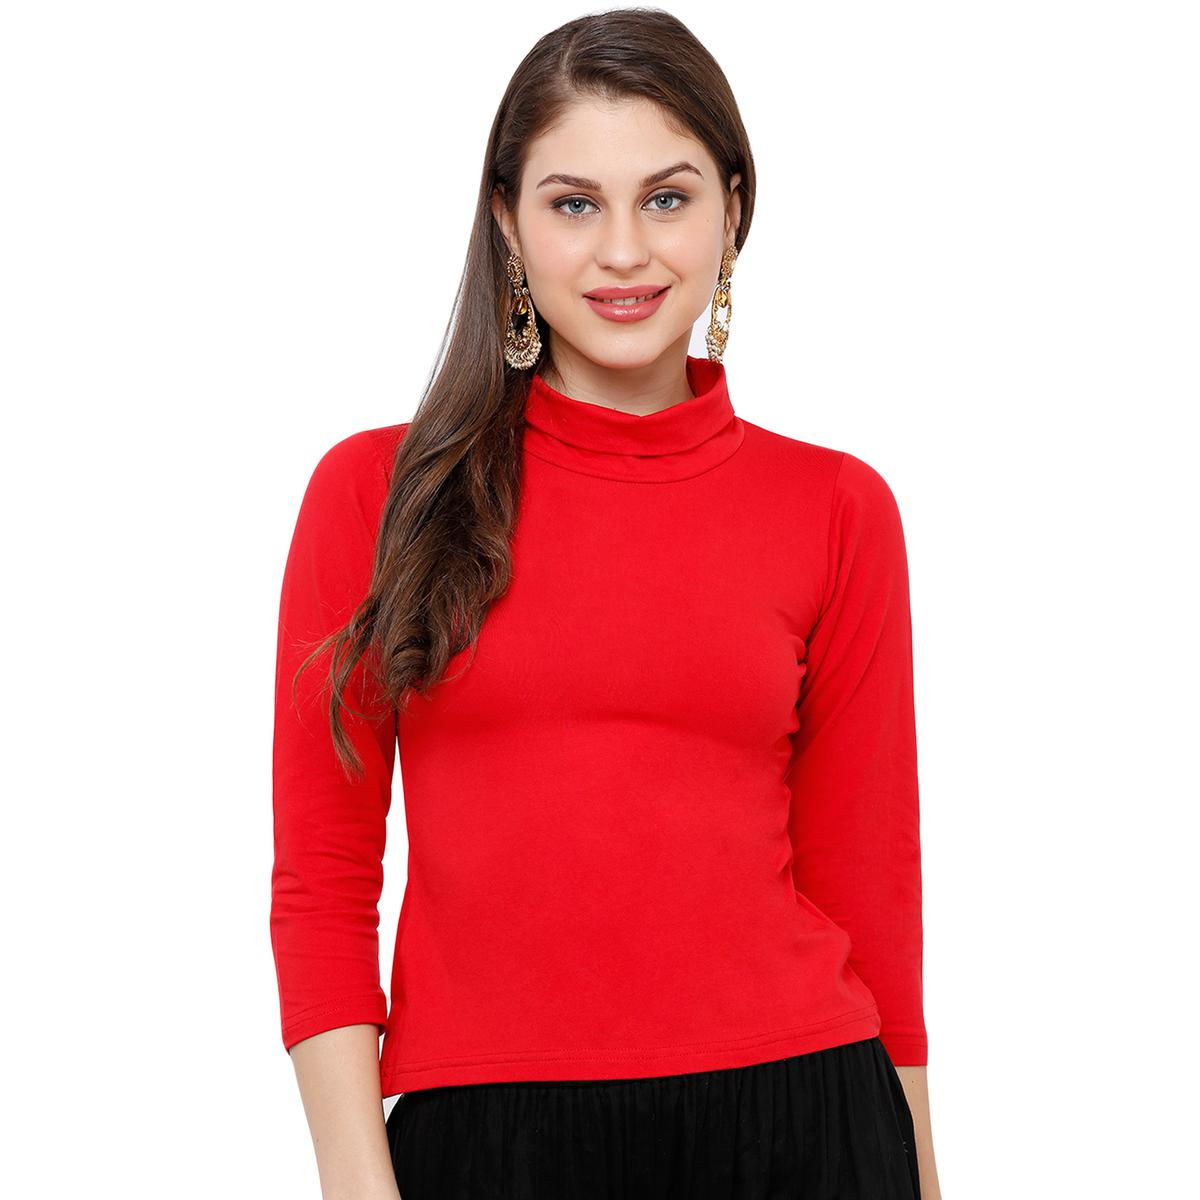 Salwar Studio - Women's Red Casual Stretchable Readymade Saree Blouse